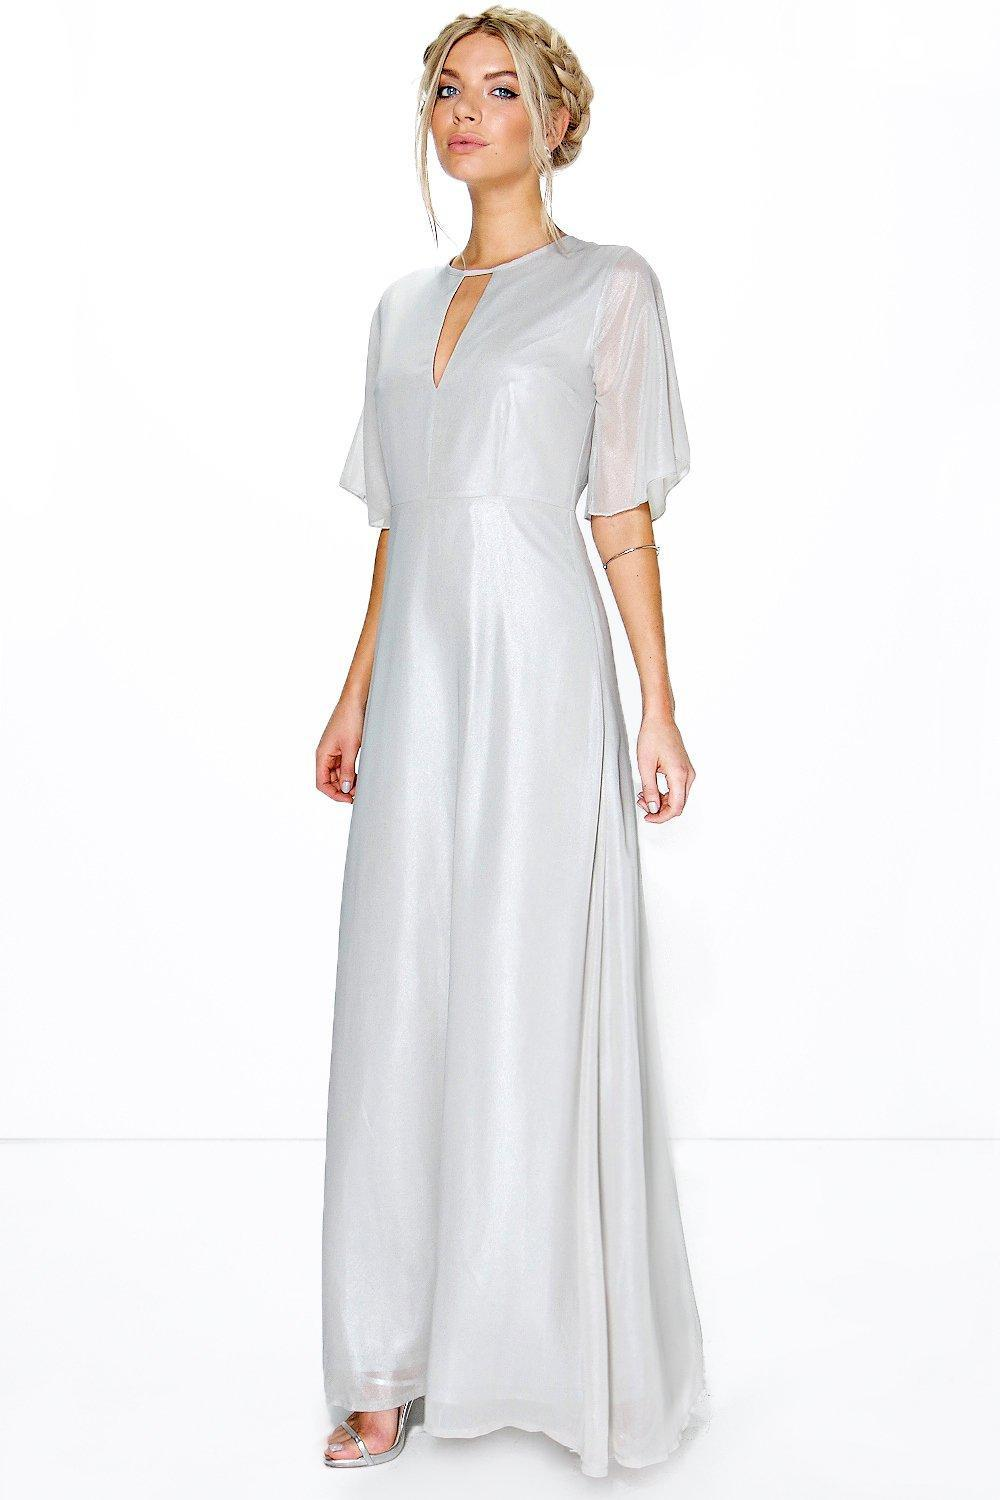 Ivy Shimmer Fabric Keyhole Maxi Dress Blush - pattern: plain; style: maxi dress; predominant colour: light grey; occasions: evening; length: floor length; fit: body skimming; neckline: peep hole neckline; fibres: polyester/polyamide - 100%; sleeve length: short sleeve; sleeve style: standard; texture group: sheer fabrics/chiffon/organza etc.; pattern type: fabric; season: s/s 2016; wardrobe: event